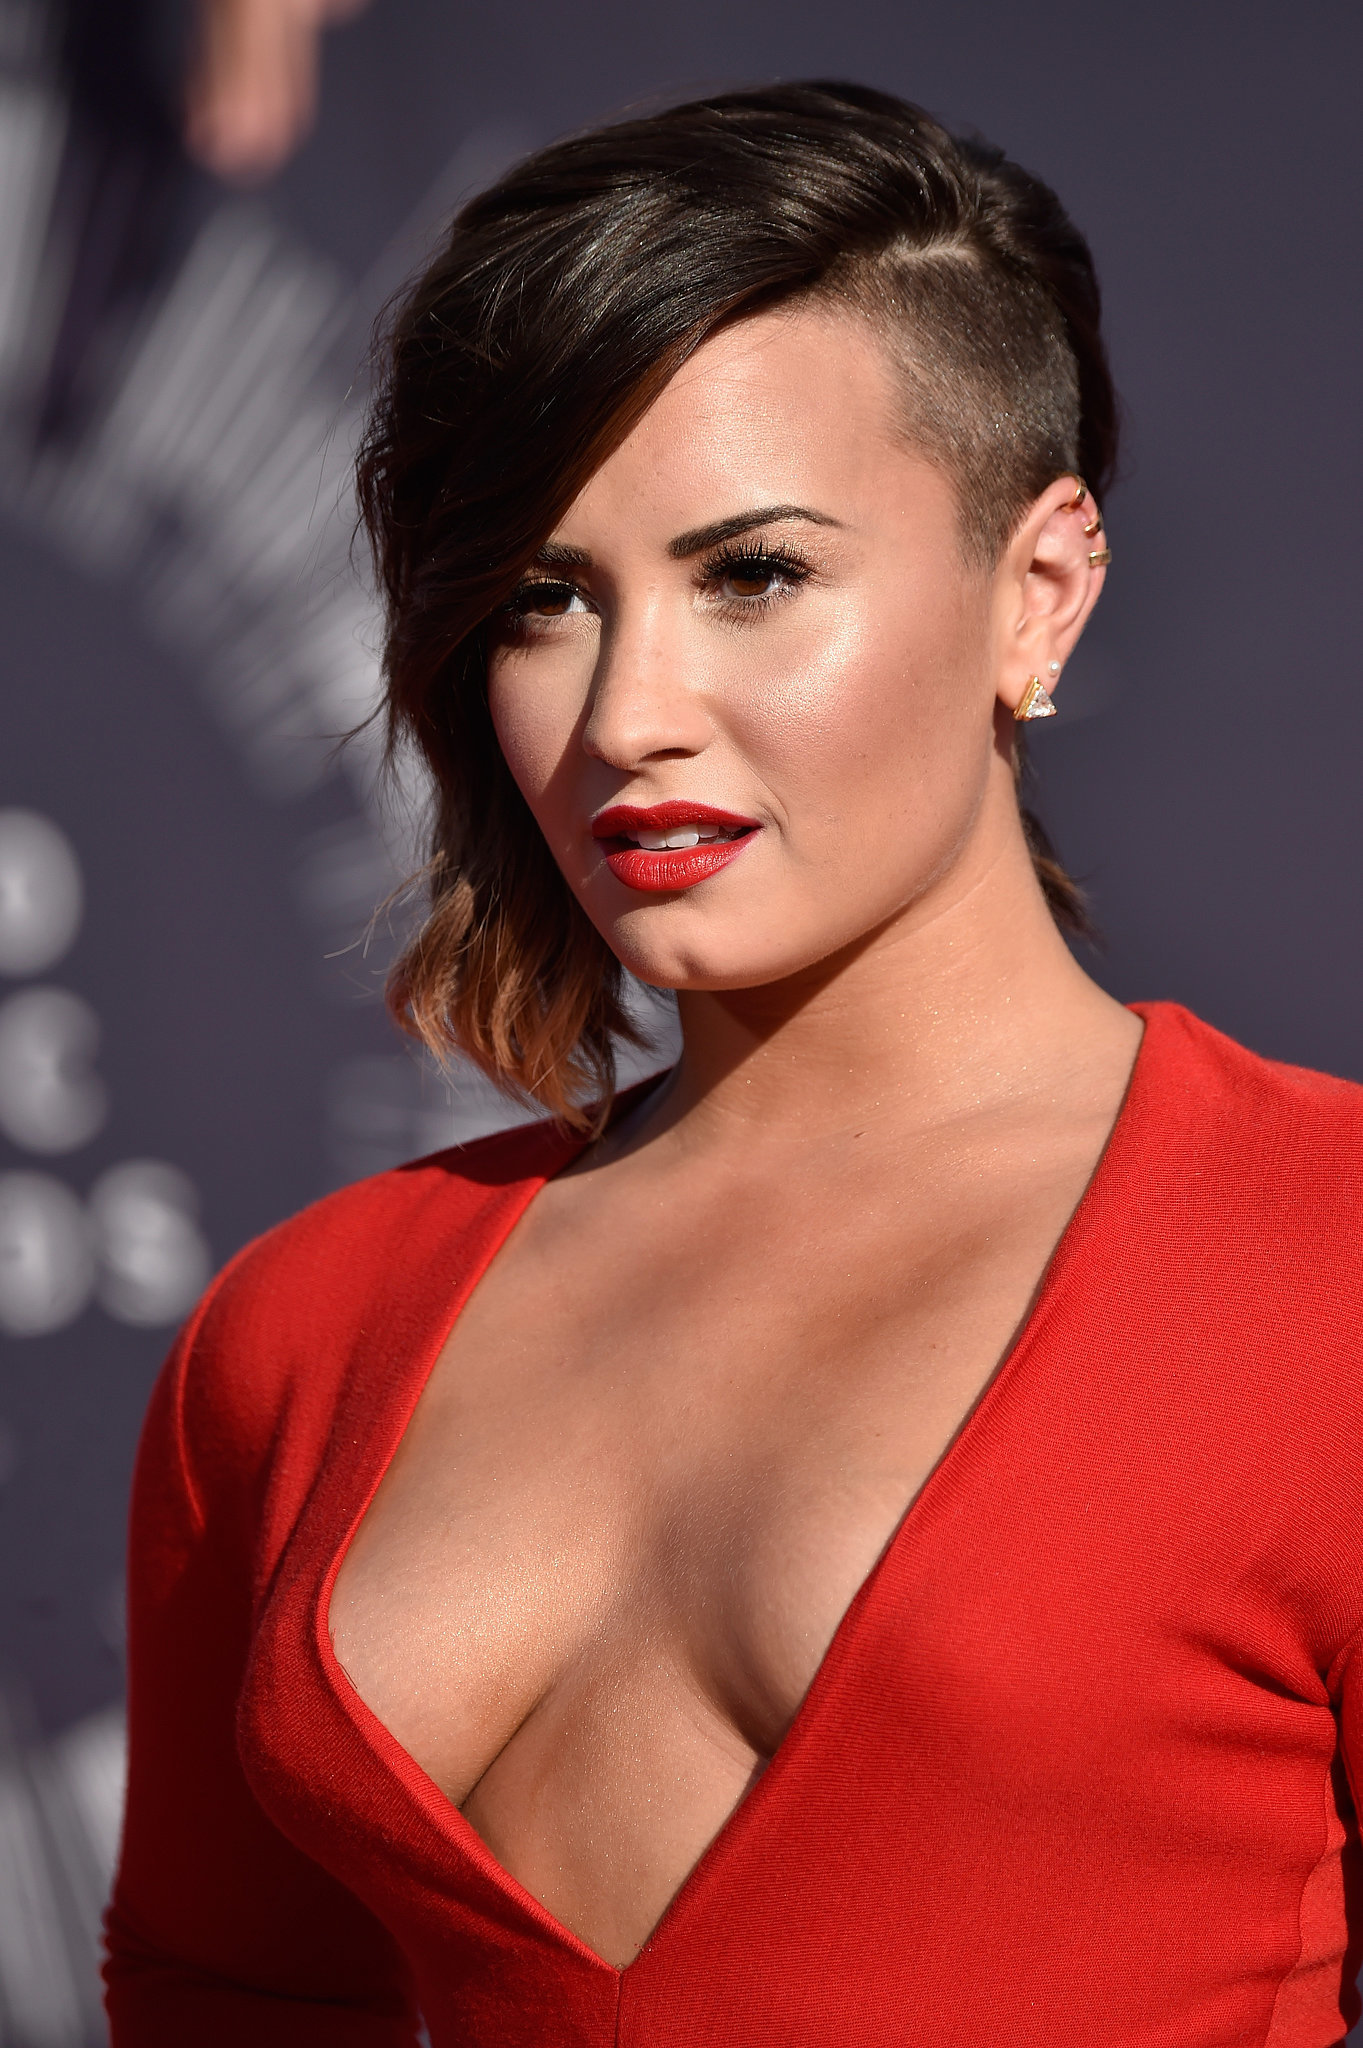 demi lovato barneydemi lovato confident, demi lovato age, demi lovato songs, demi lovato and wilmer valderrama, demi lovato tour, demi lovato cool for the summer lyrics, demi lovato instagram, demi lovato net worth, demi lovato stone cold, demi lovato tattoo, demi lovato twitter, demi lovato lyrics, demi lovato barney, demi lovato cool for the summer, demi lovato new album, demi lovato weight loss, demi lovato skyscraper, demi lovato cool for the summer meaning, demi lovato new song